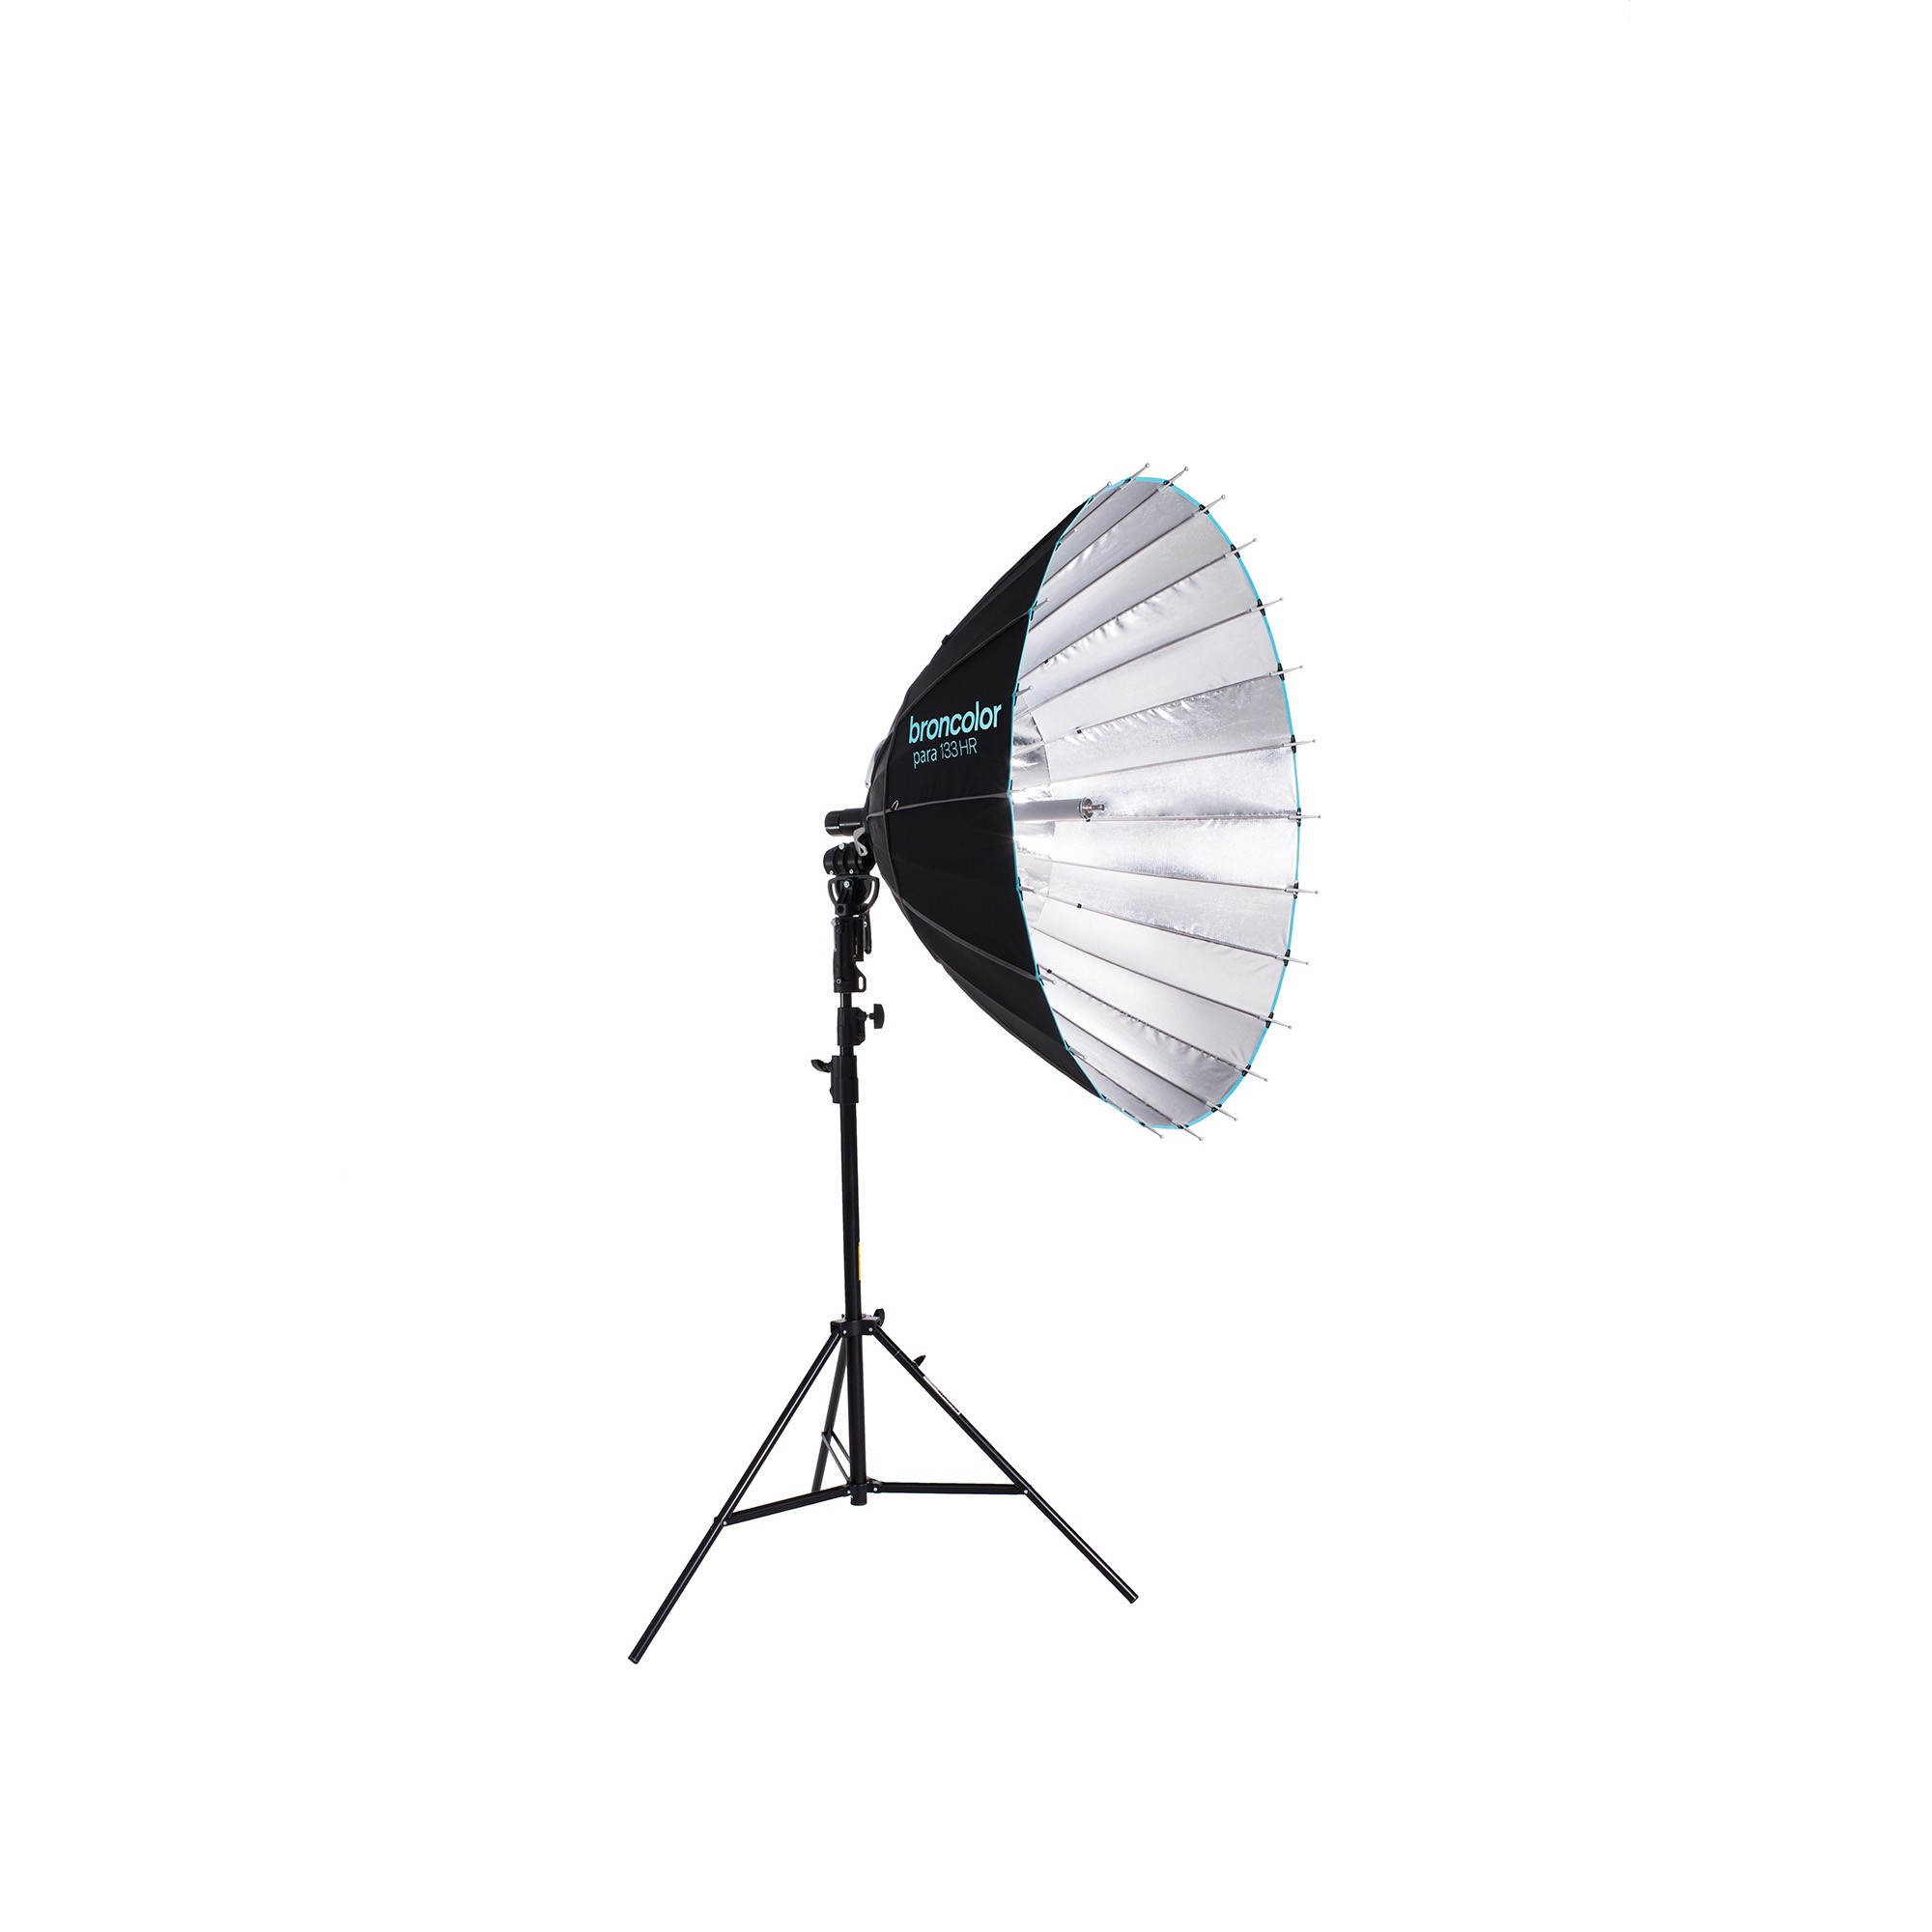 Broncolor Para 133 HR available to rent / verhuur / location at 50.8 Studio • Belgïe, Belgique, Belgium, Broncolor, Para, Photo, Rental, Strobe, Studio, Video